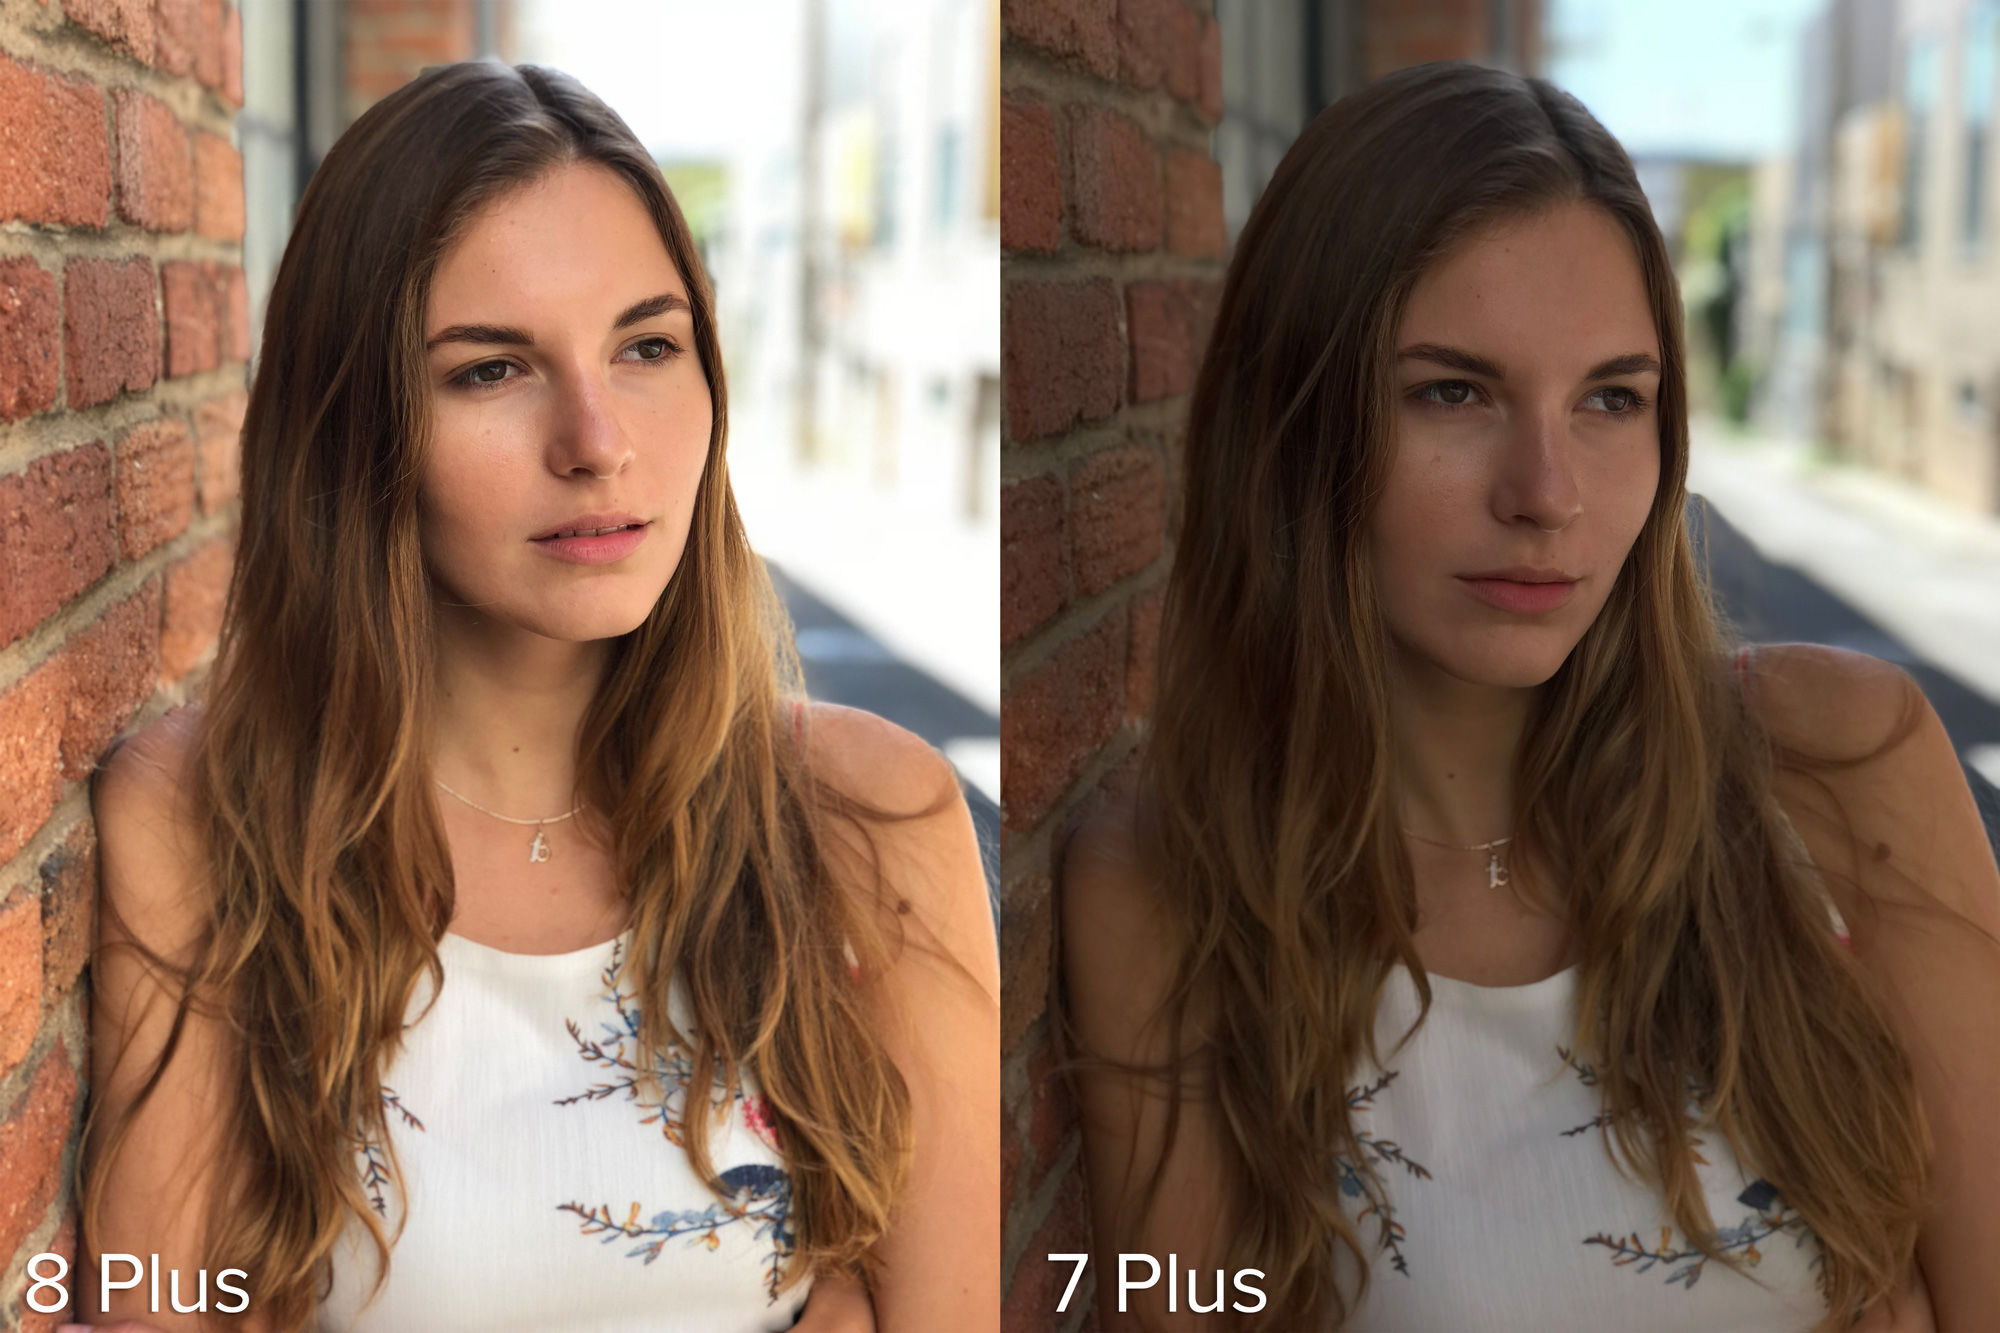 iPhone 8 Plus vs iPhone 7 Plus camera test – which takes the